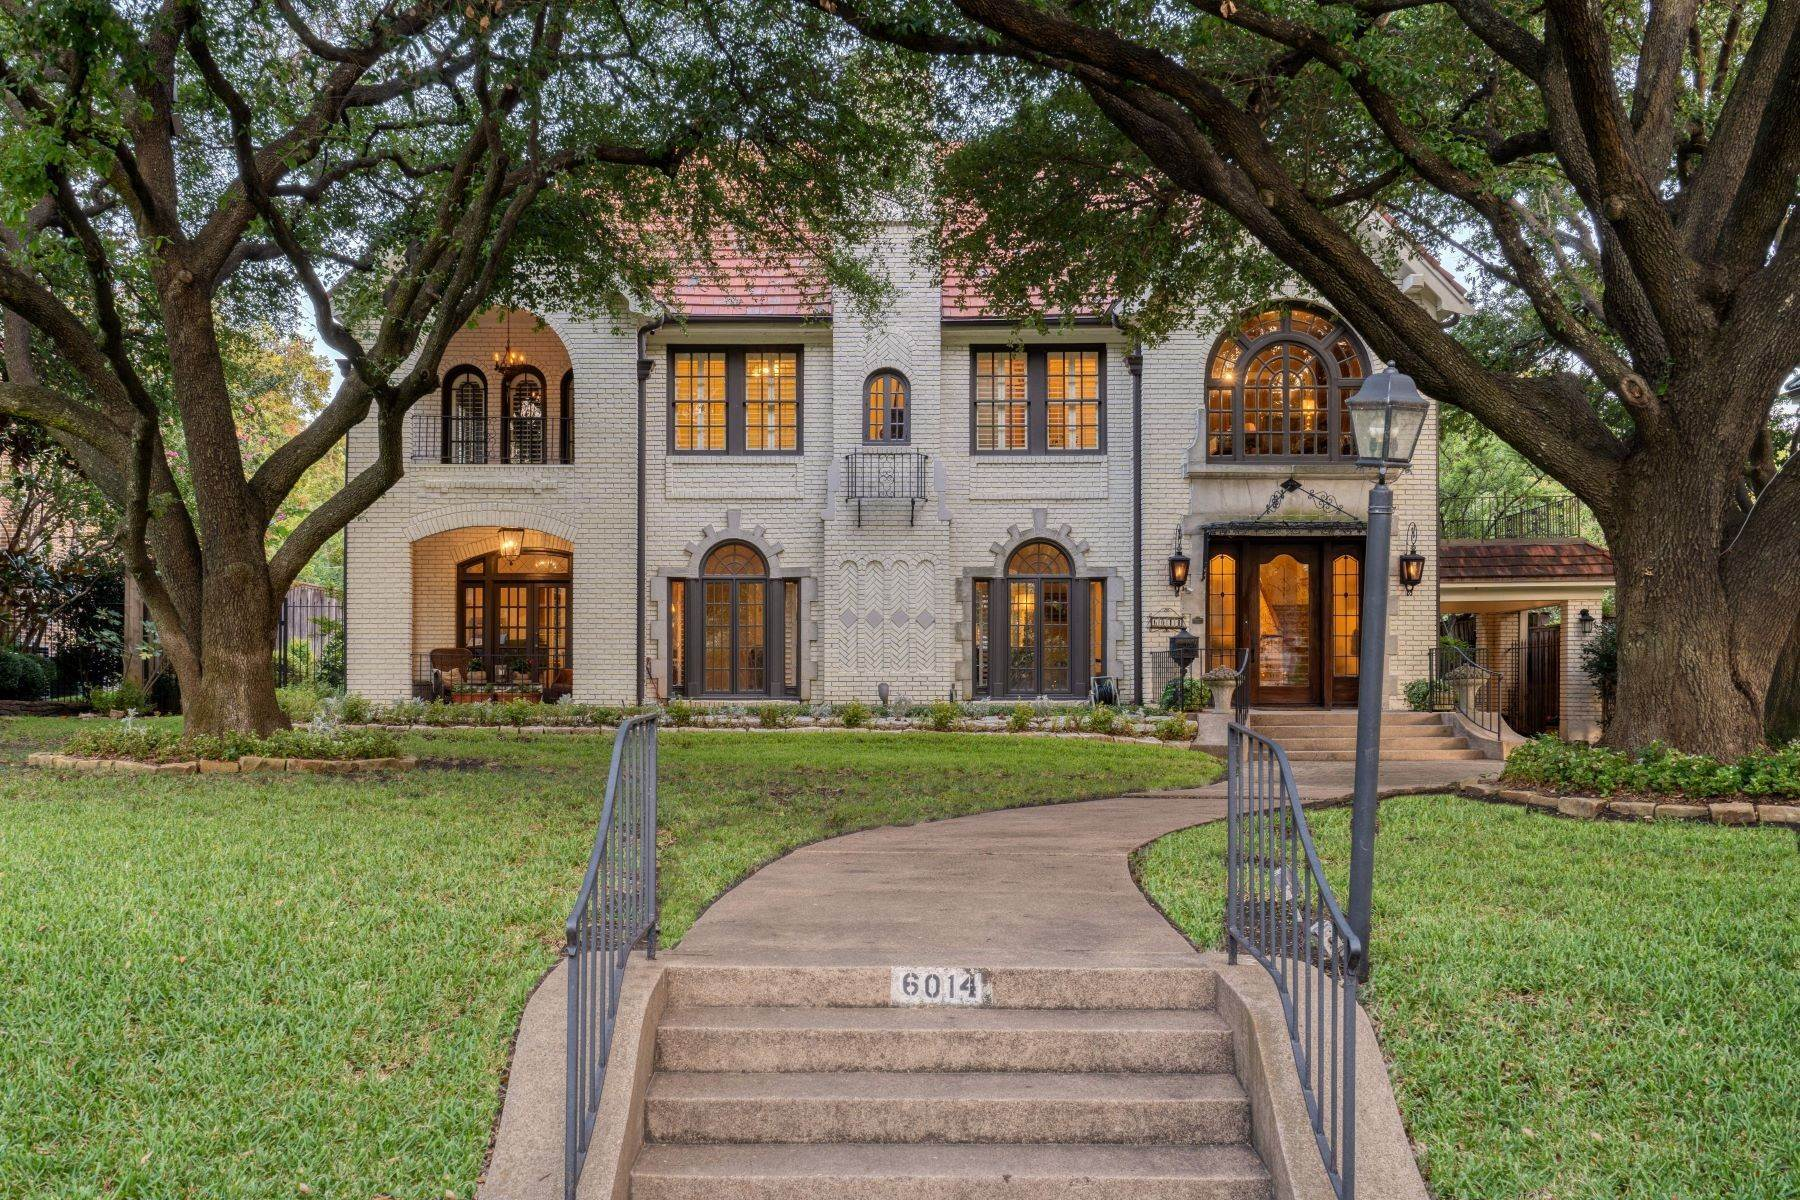 Single Family Homes for Sale at 6014 Swiss Avenue, Dallas, TX, 75214 6014 Swiss Avenue Dallas, Texas 75214 United States